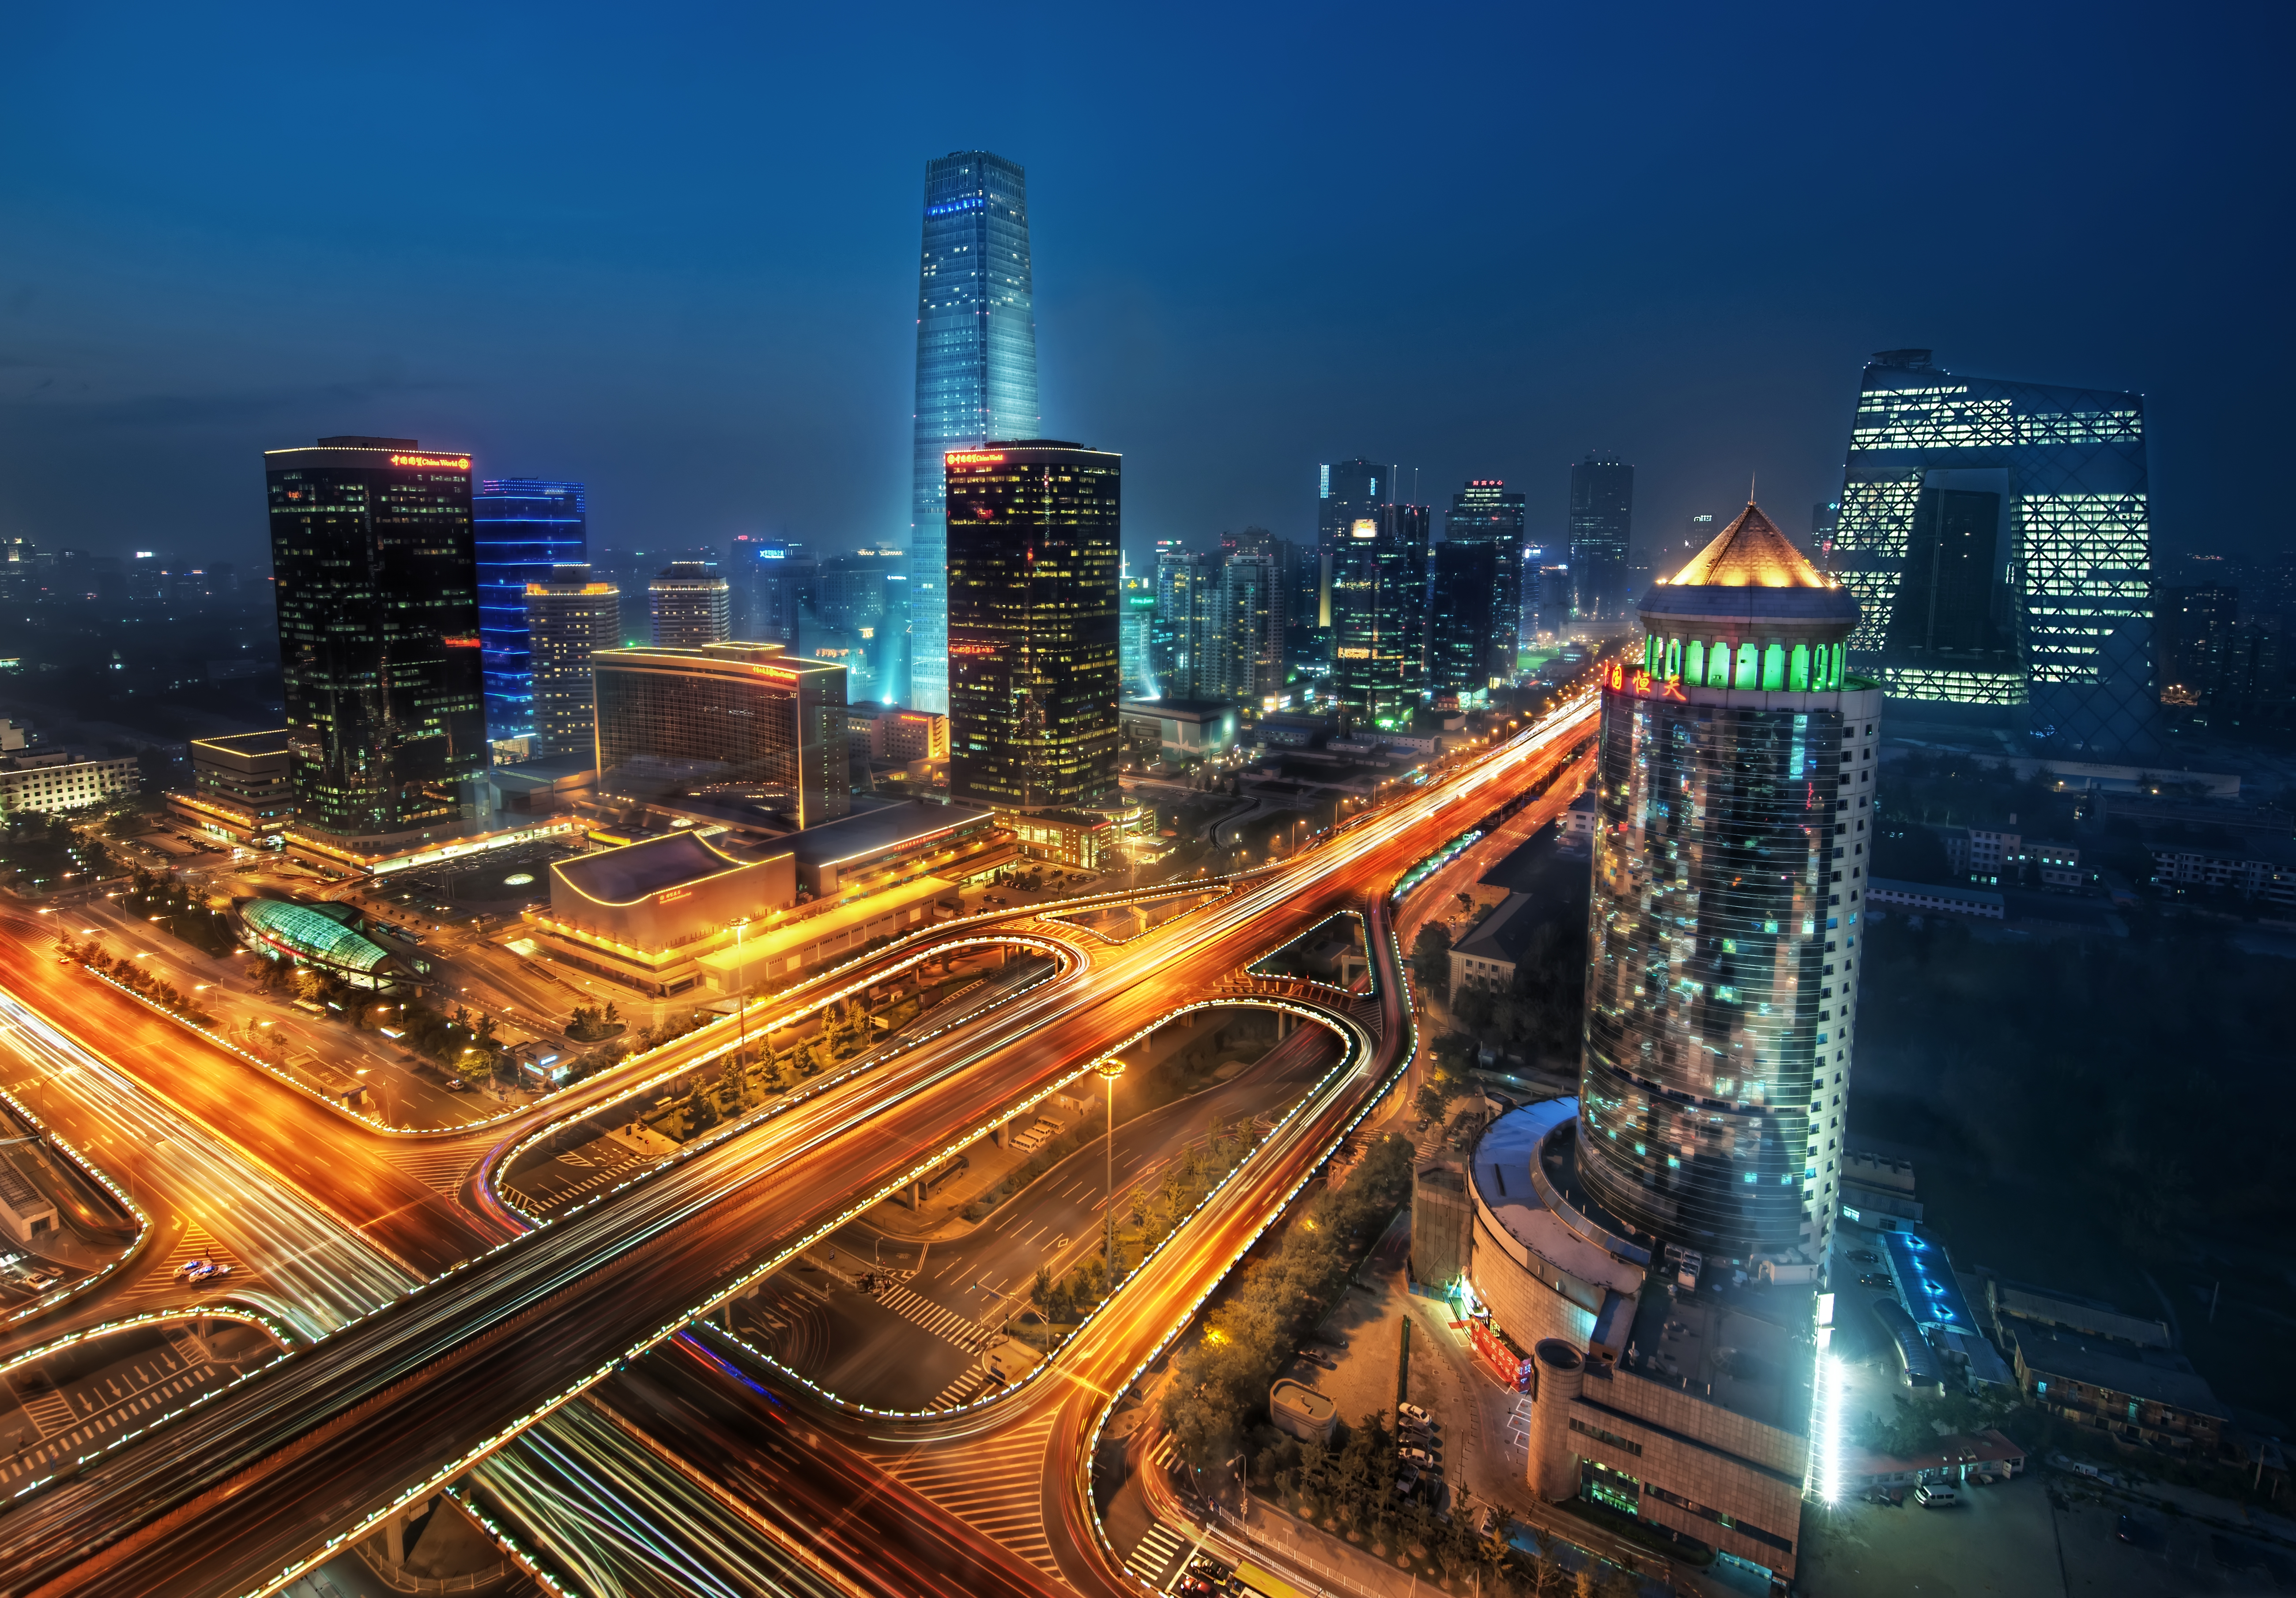 445 China Hd Wallpapers Background Images Wallpaper Abyss